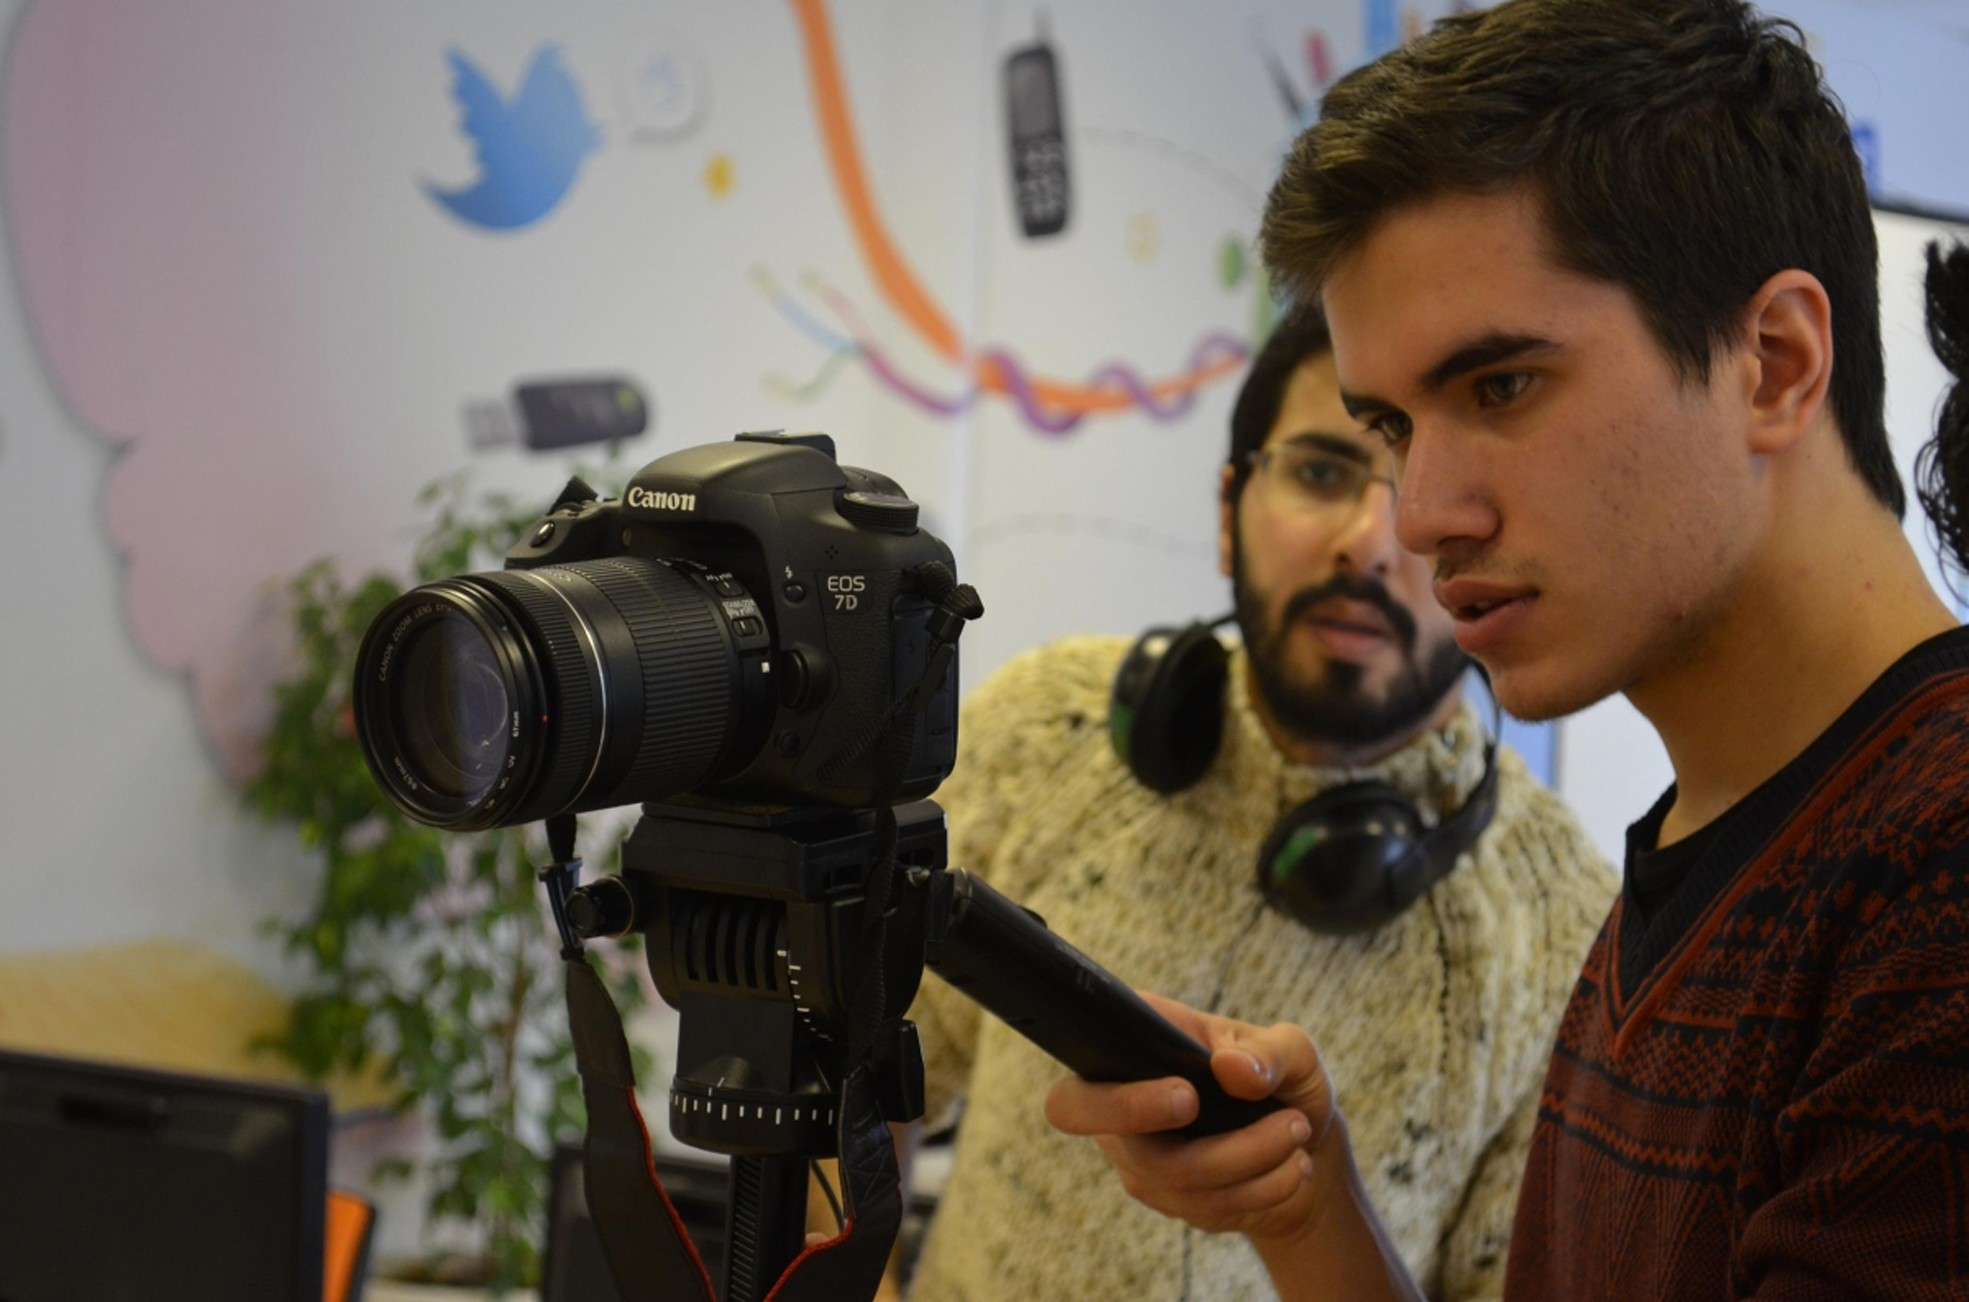 140 students trained at Sancaktepe Cinema Academy will work in the project as volunteers.